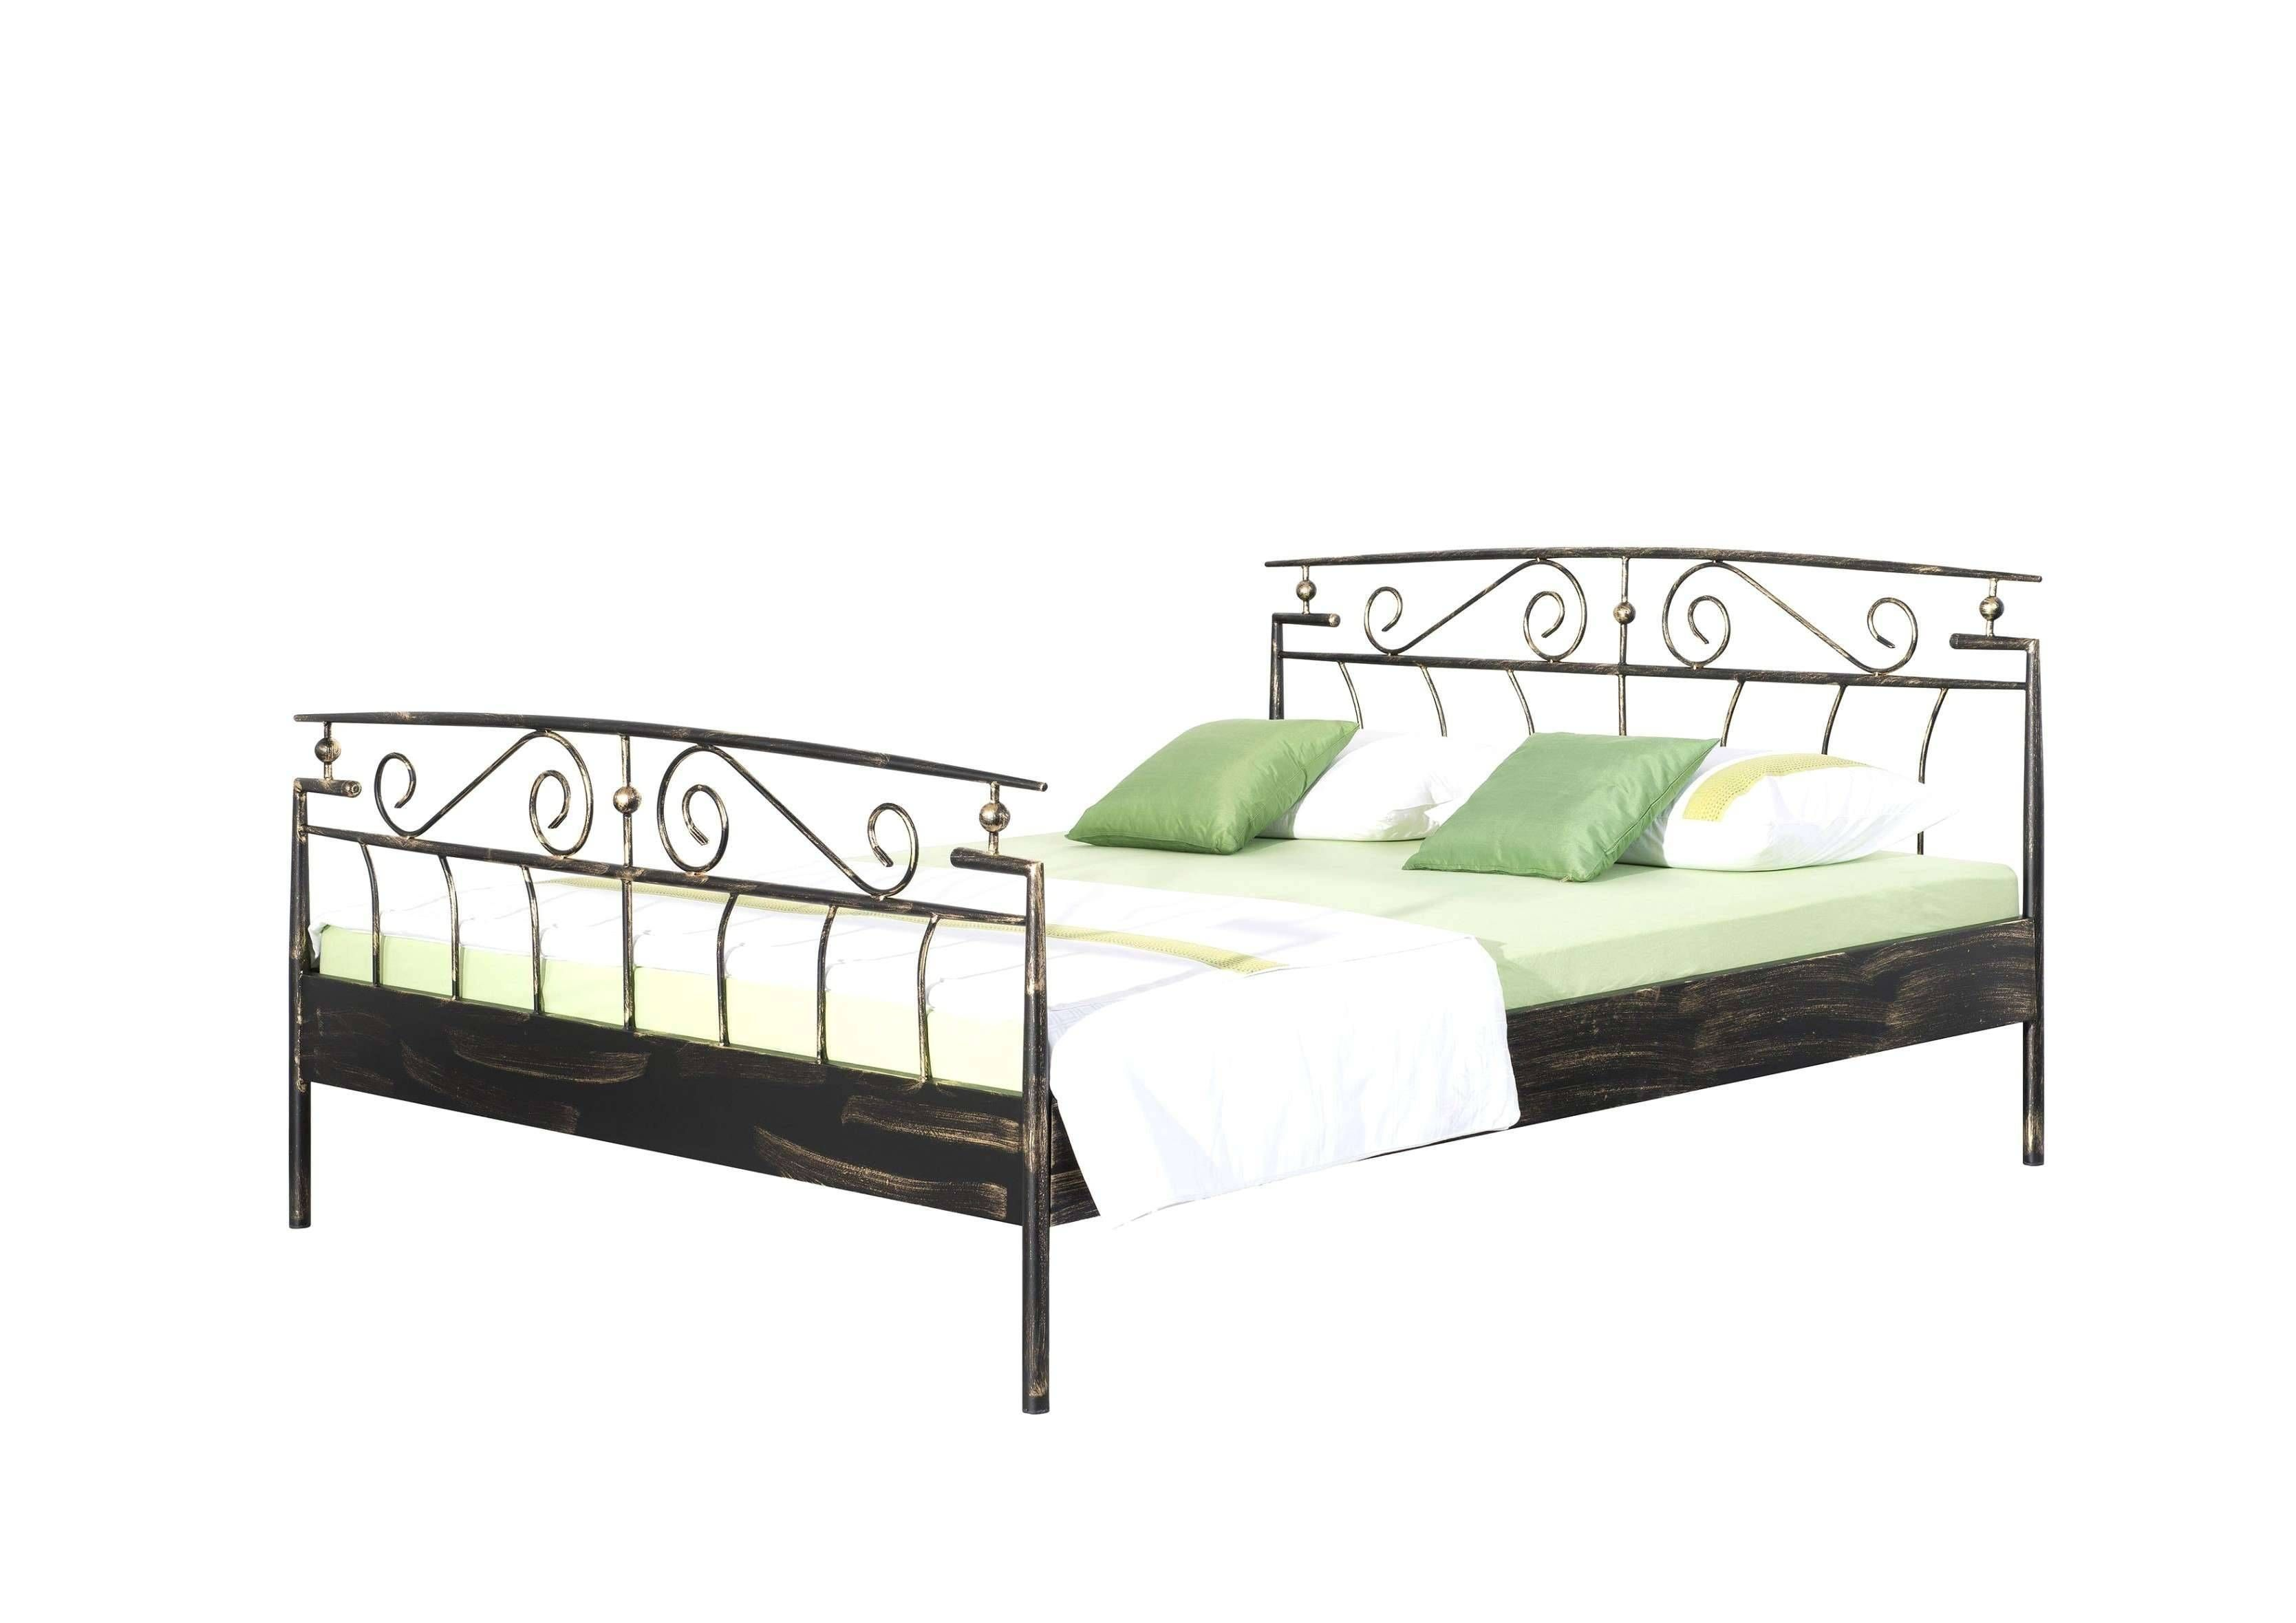 Wohnzimmer Regal Aldi  Furniture, Home, Bed